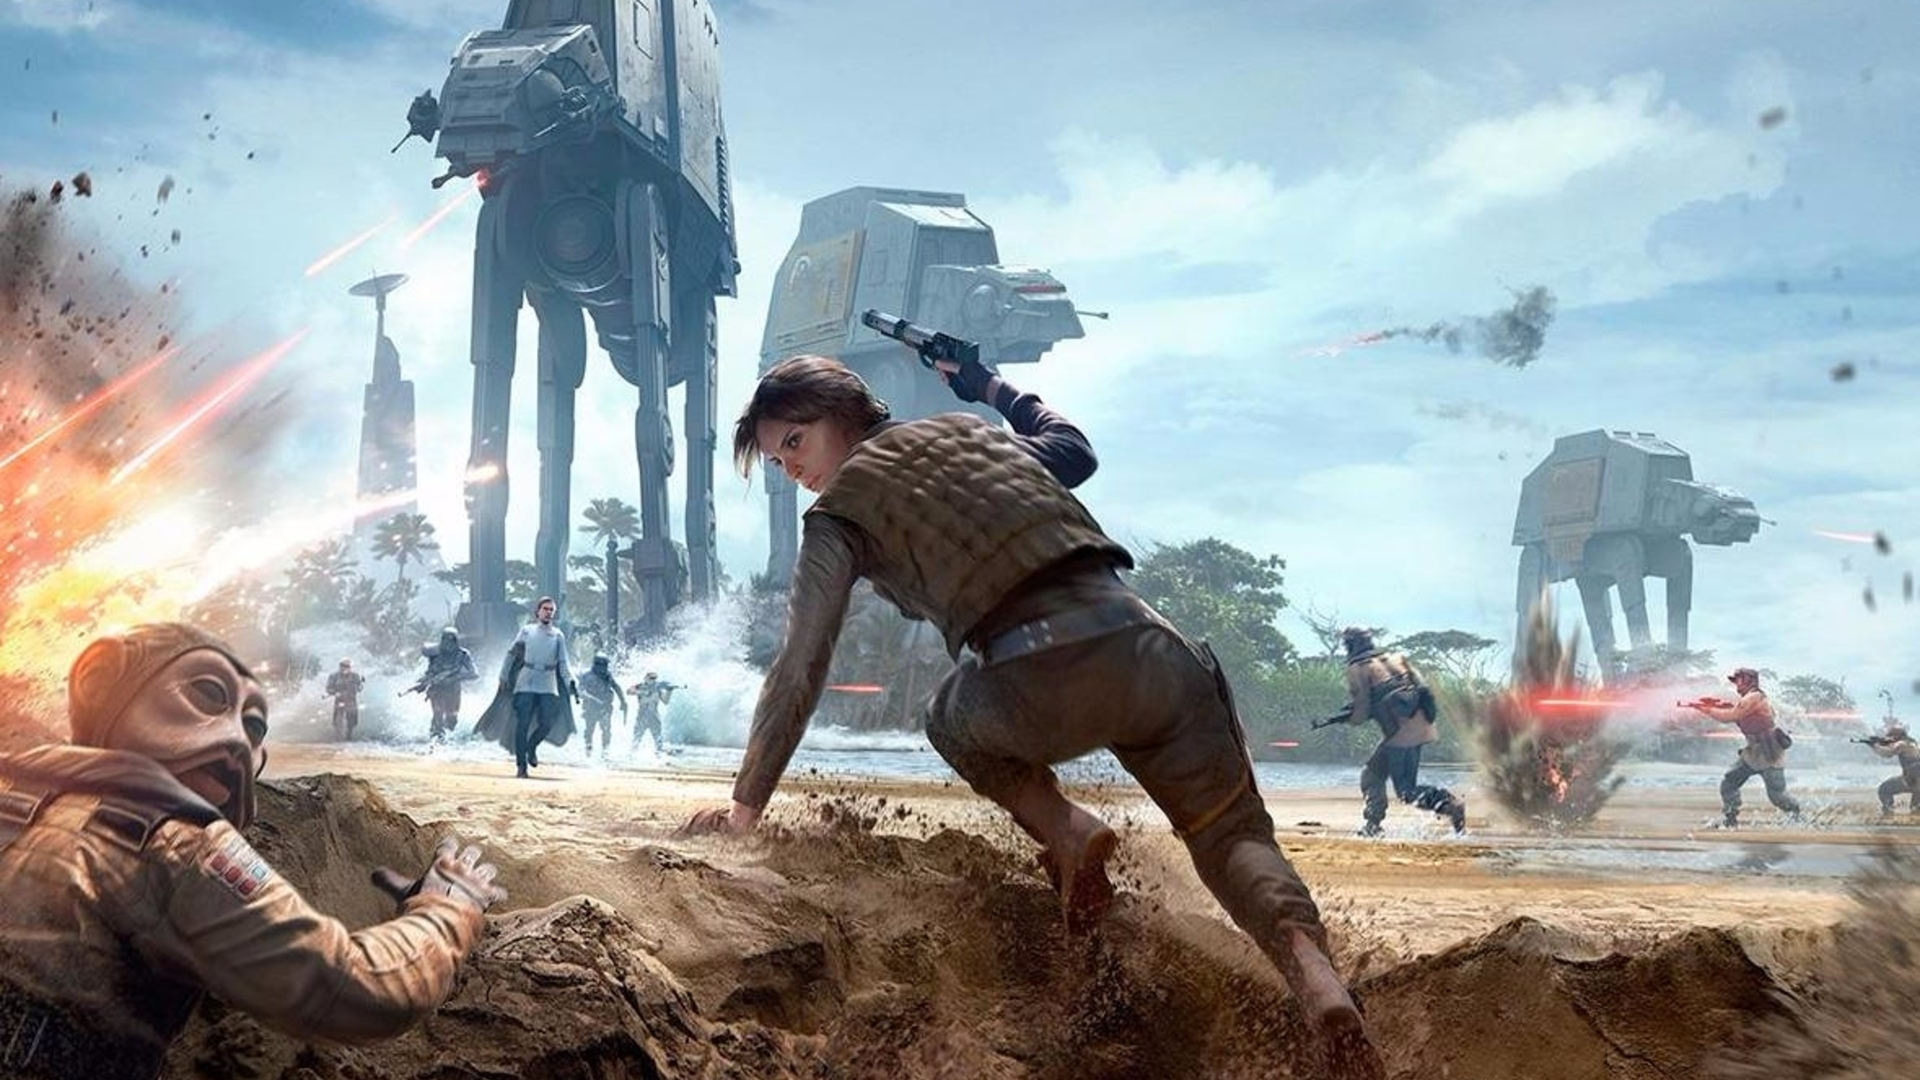 Star Wars Battlefront is getting Rogue One DLC ahead of film's launch